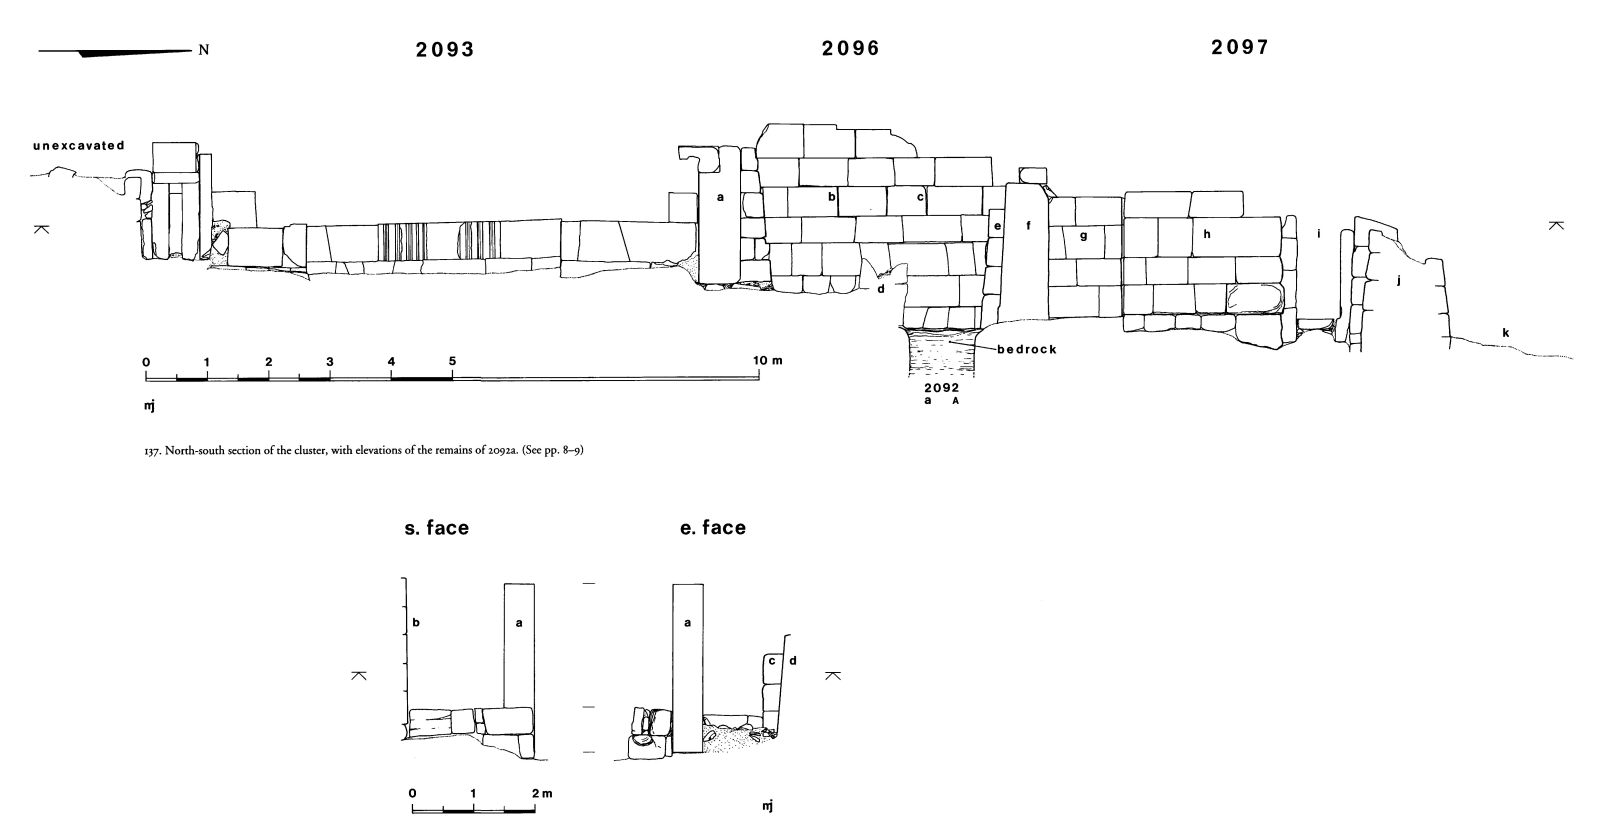 Maps and plans: Elevation of G 2093, G 2096, G 2097, with remains of G 2092a